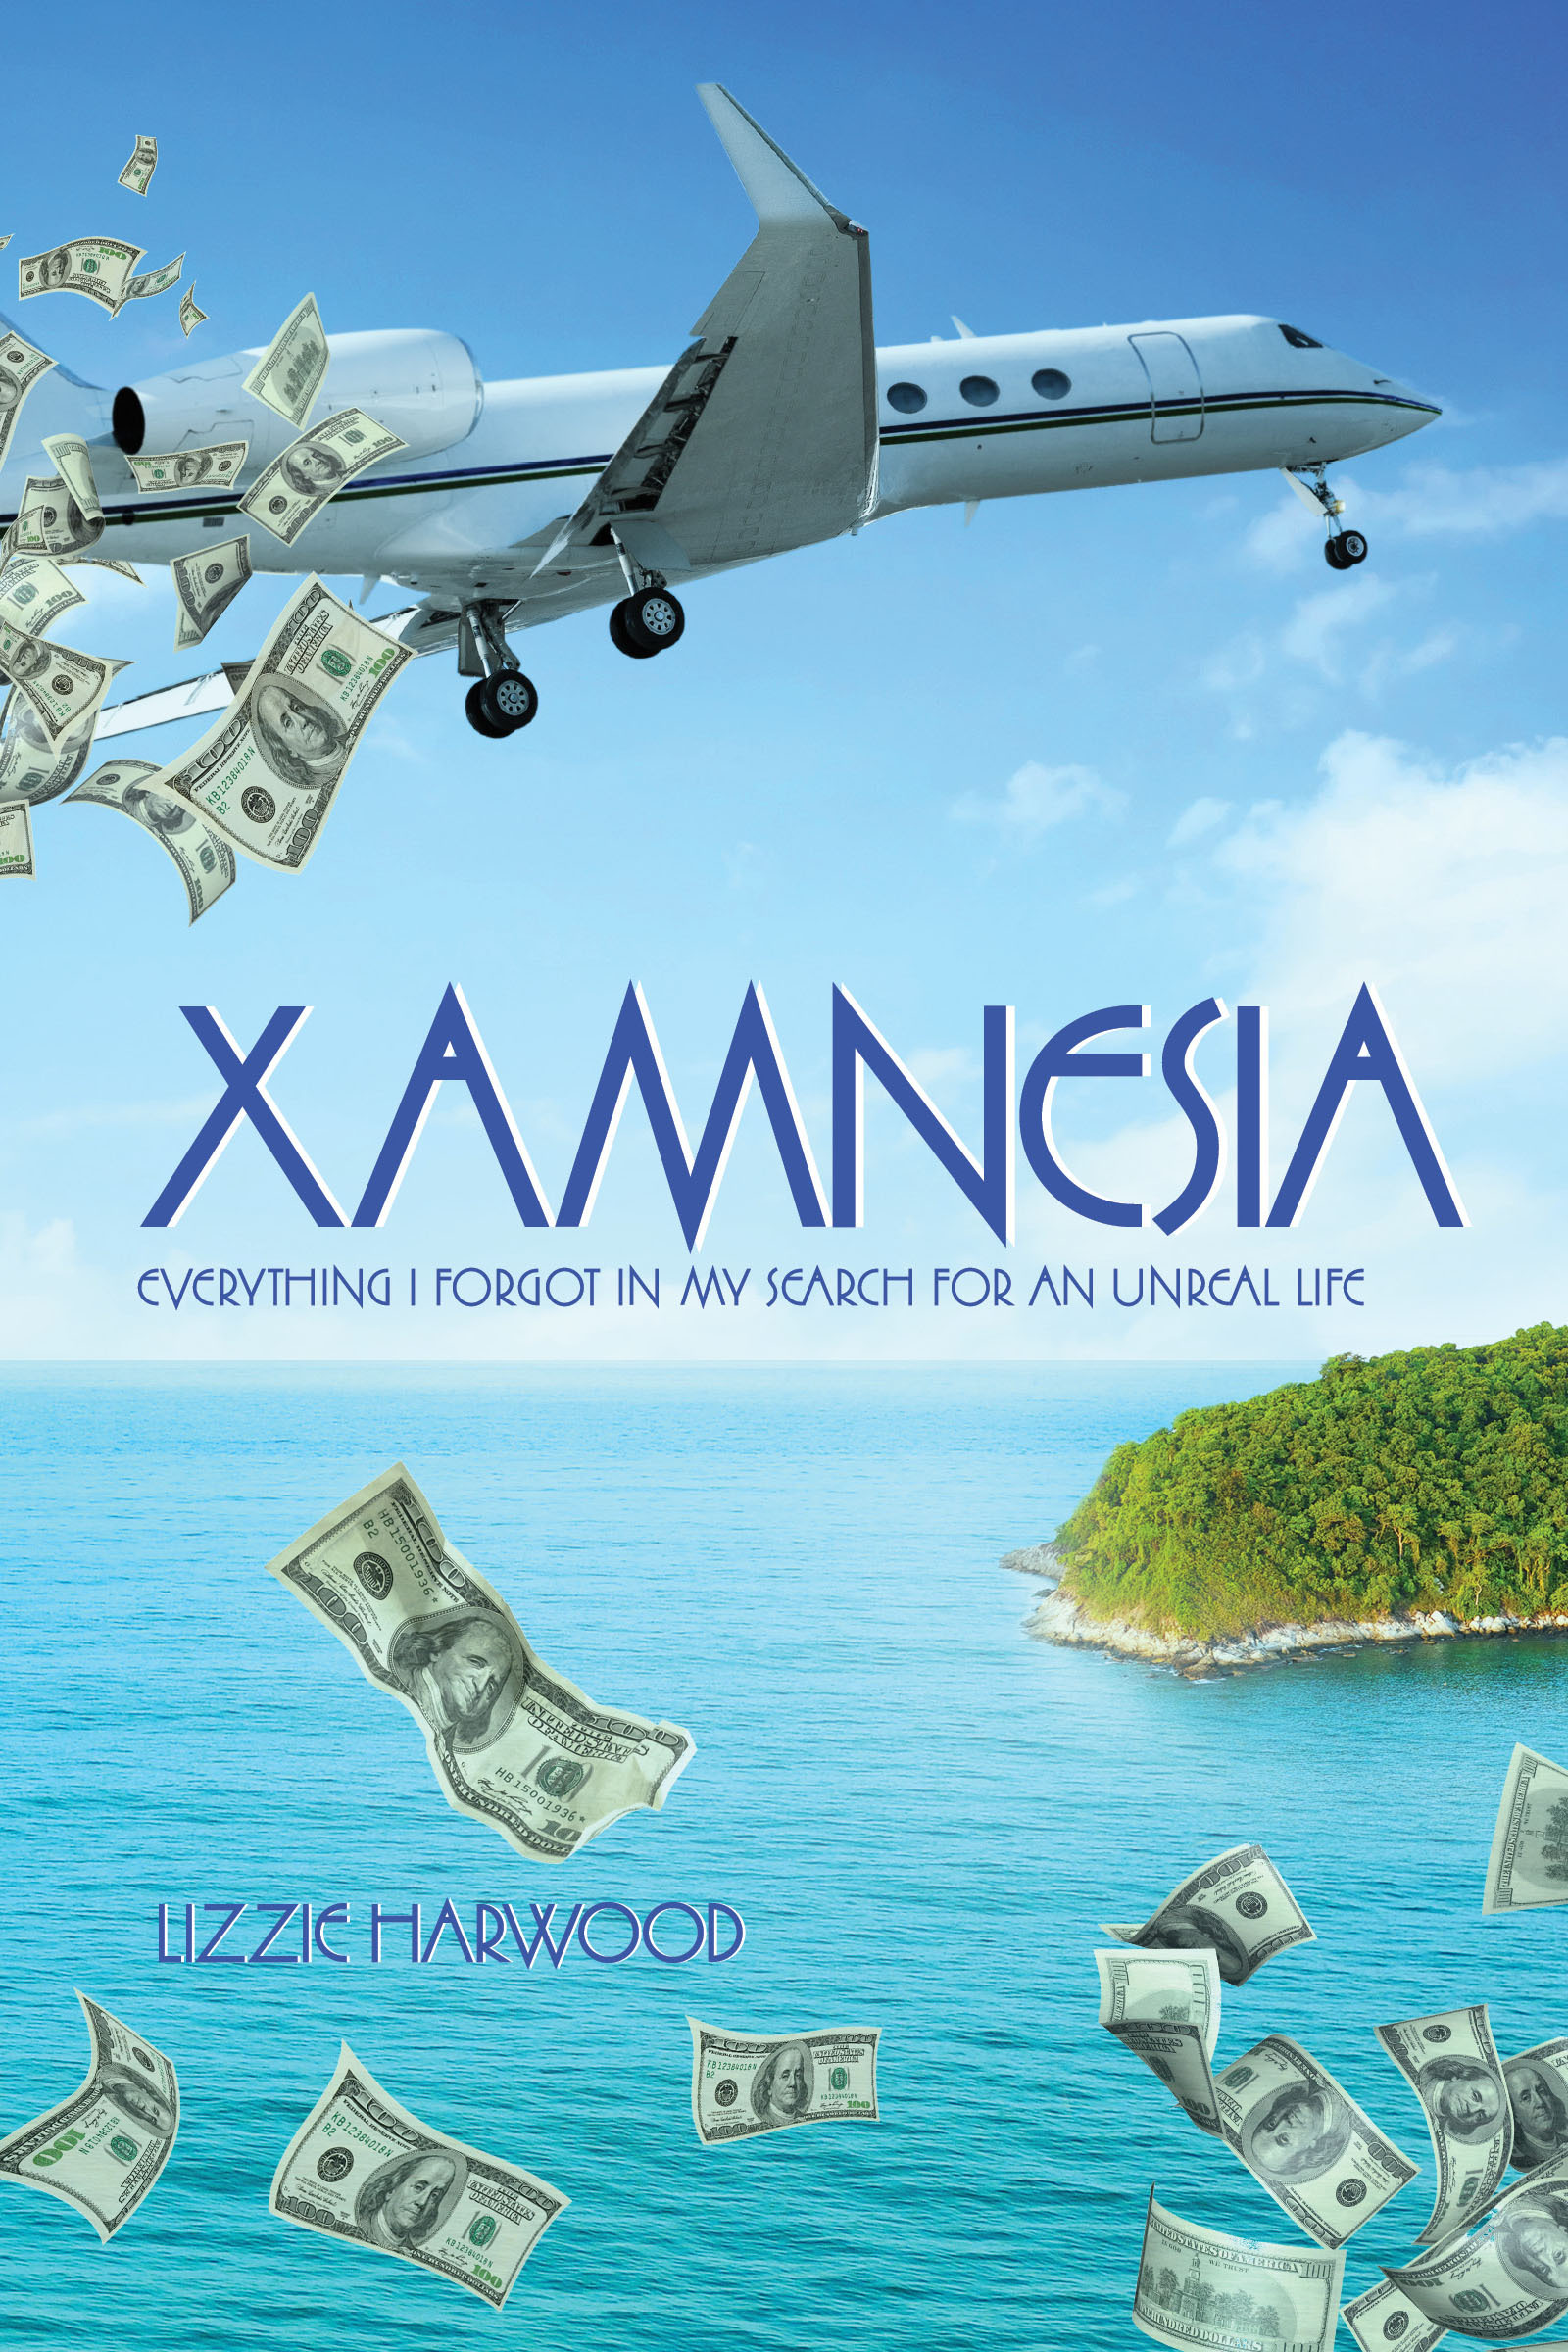 Xamnesia: Everything I Forgot in my Search for an Unreal Life Lizzie Harwood